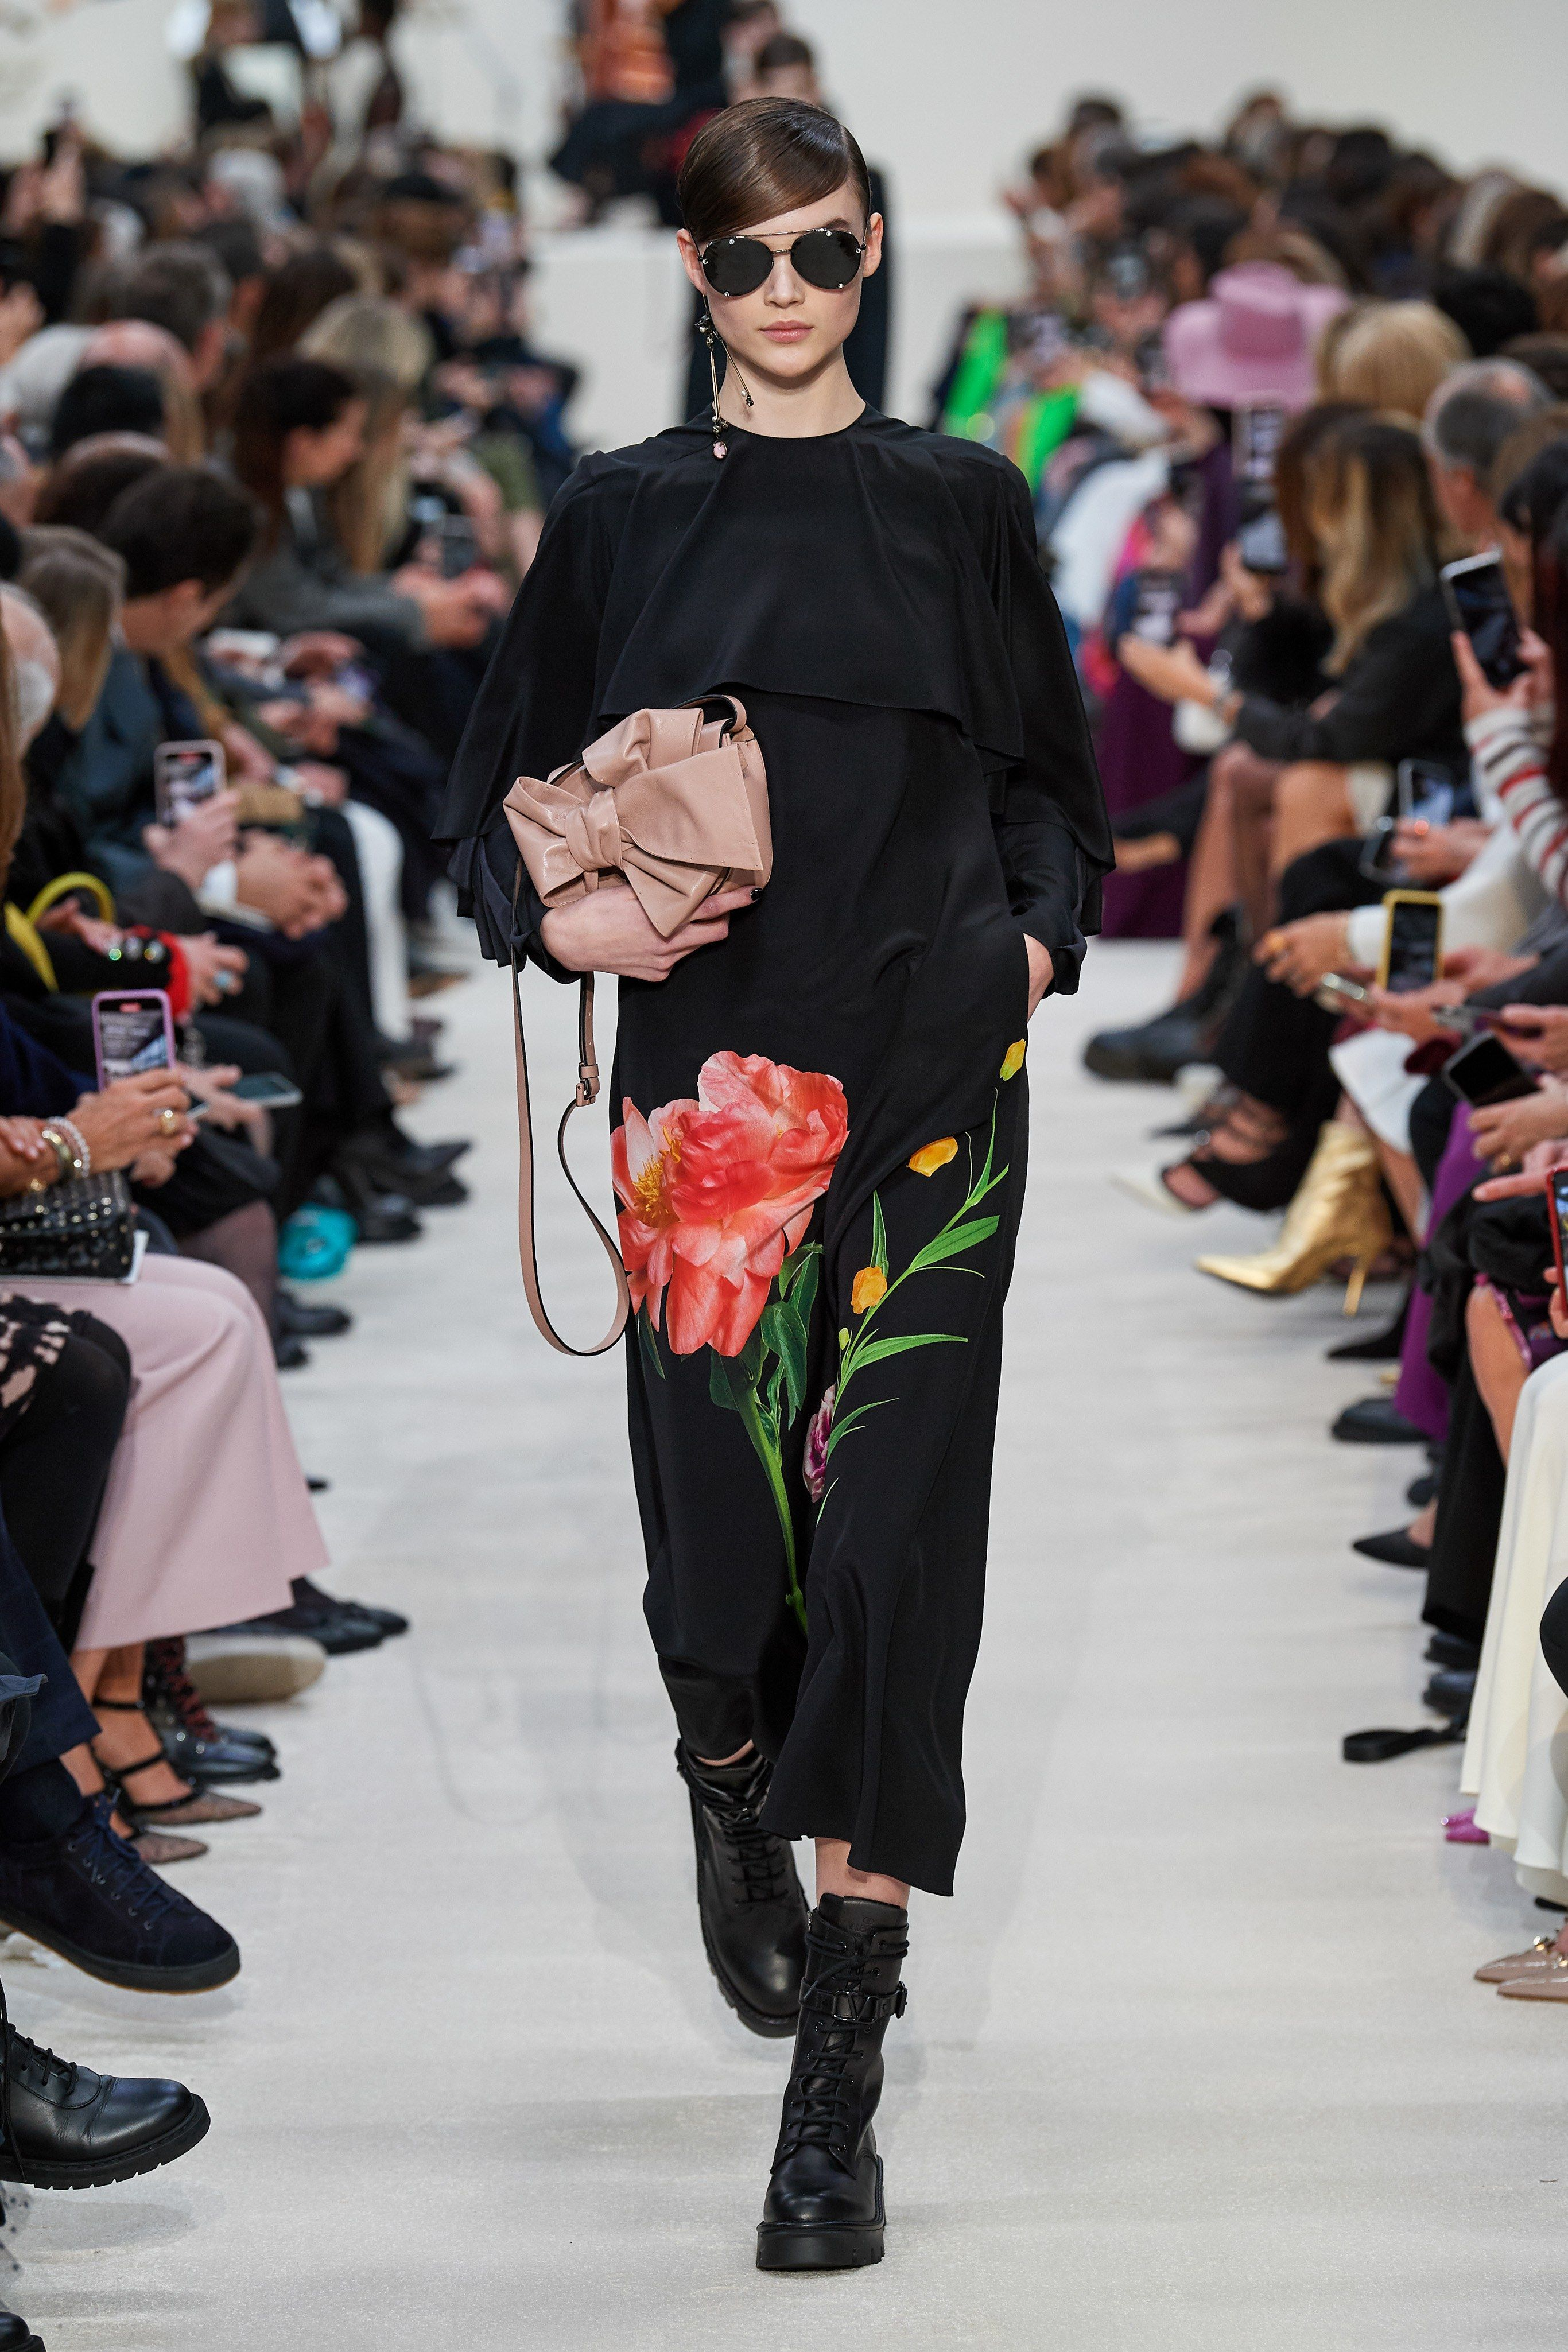 I Want That Bouquet In 2020 Fashion Fashion Photoshoot Paris Fashion Week